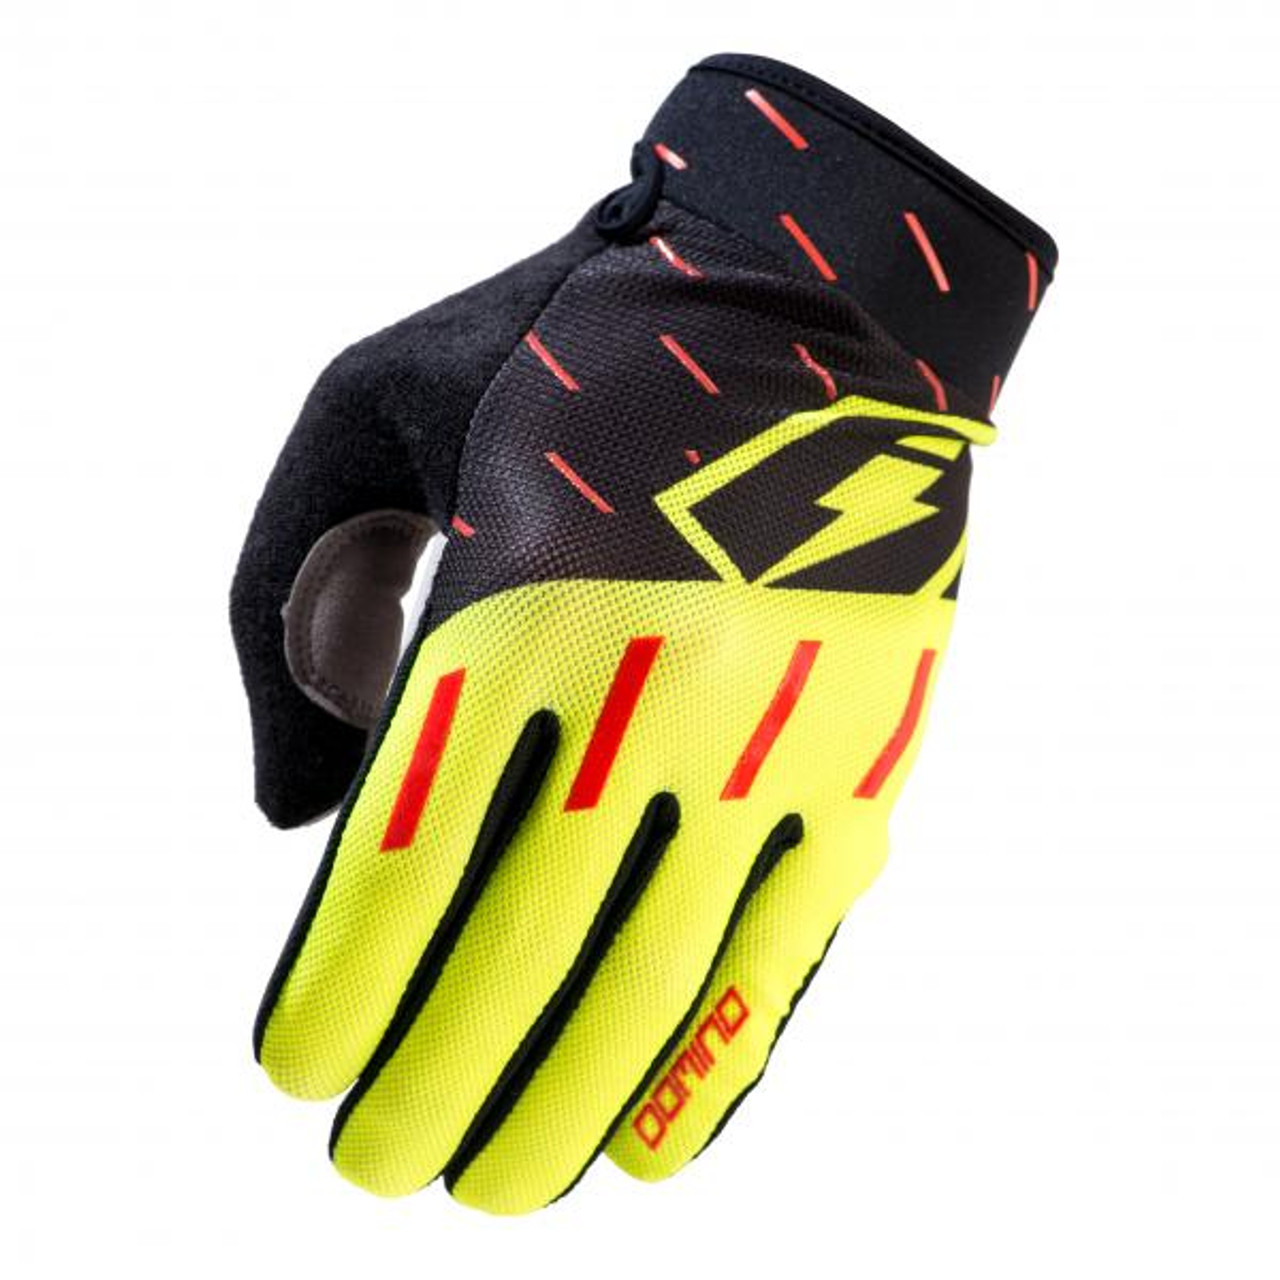 Gloves Domino, black/ red/ fluo yellow